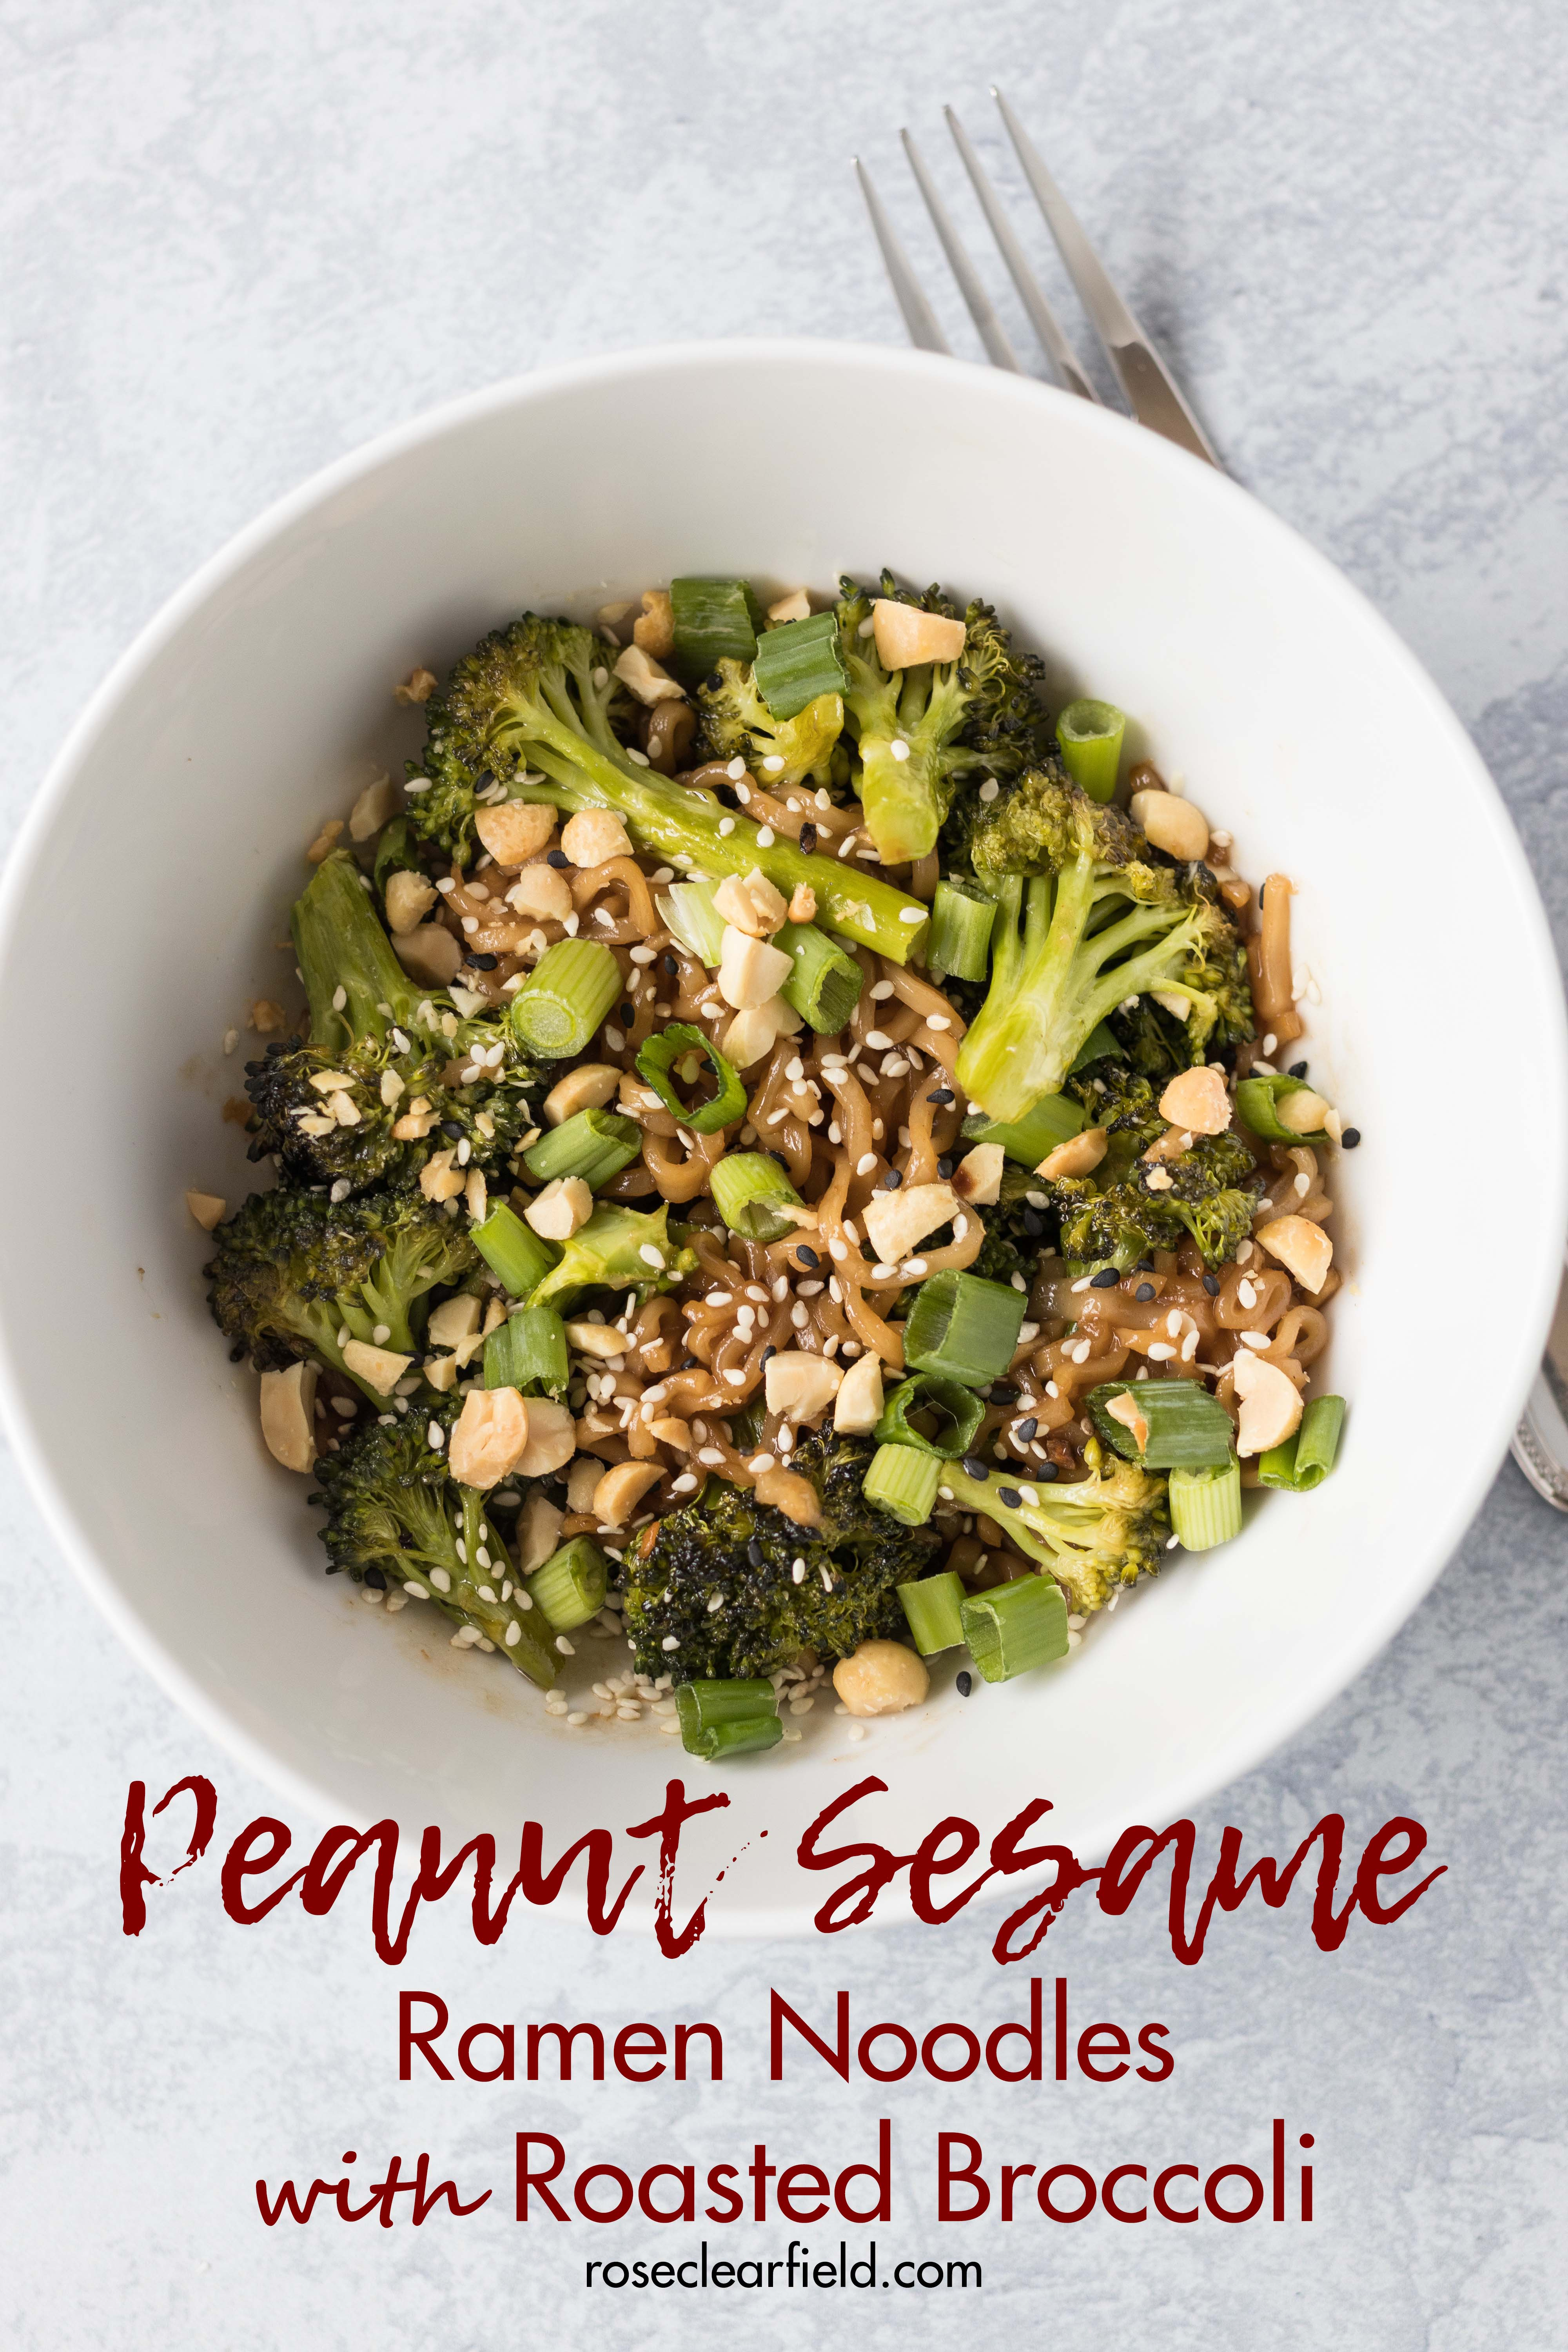 Peanut sesame Ramen noodles with roasted broccoli. Quick lunch recipe packed with so much flavor! #sesameRamen #peanutnoodles #lunchrecipe | https://www.roseclearfield.com